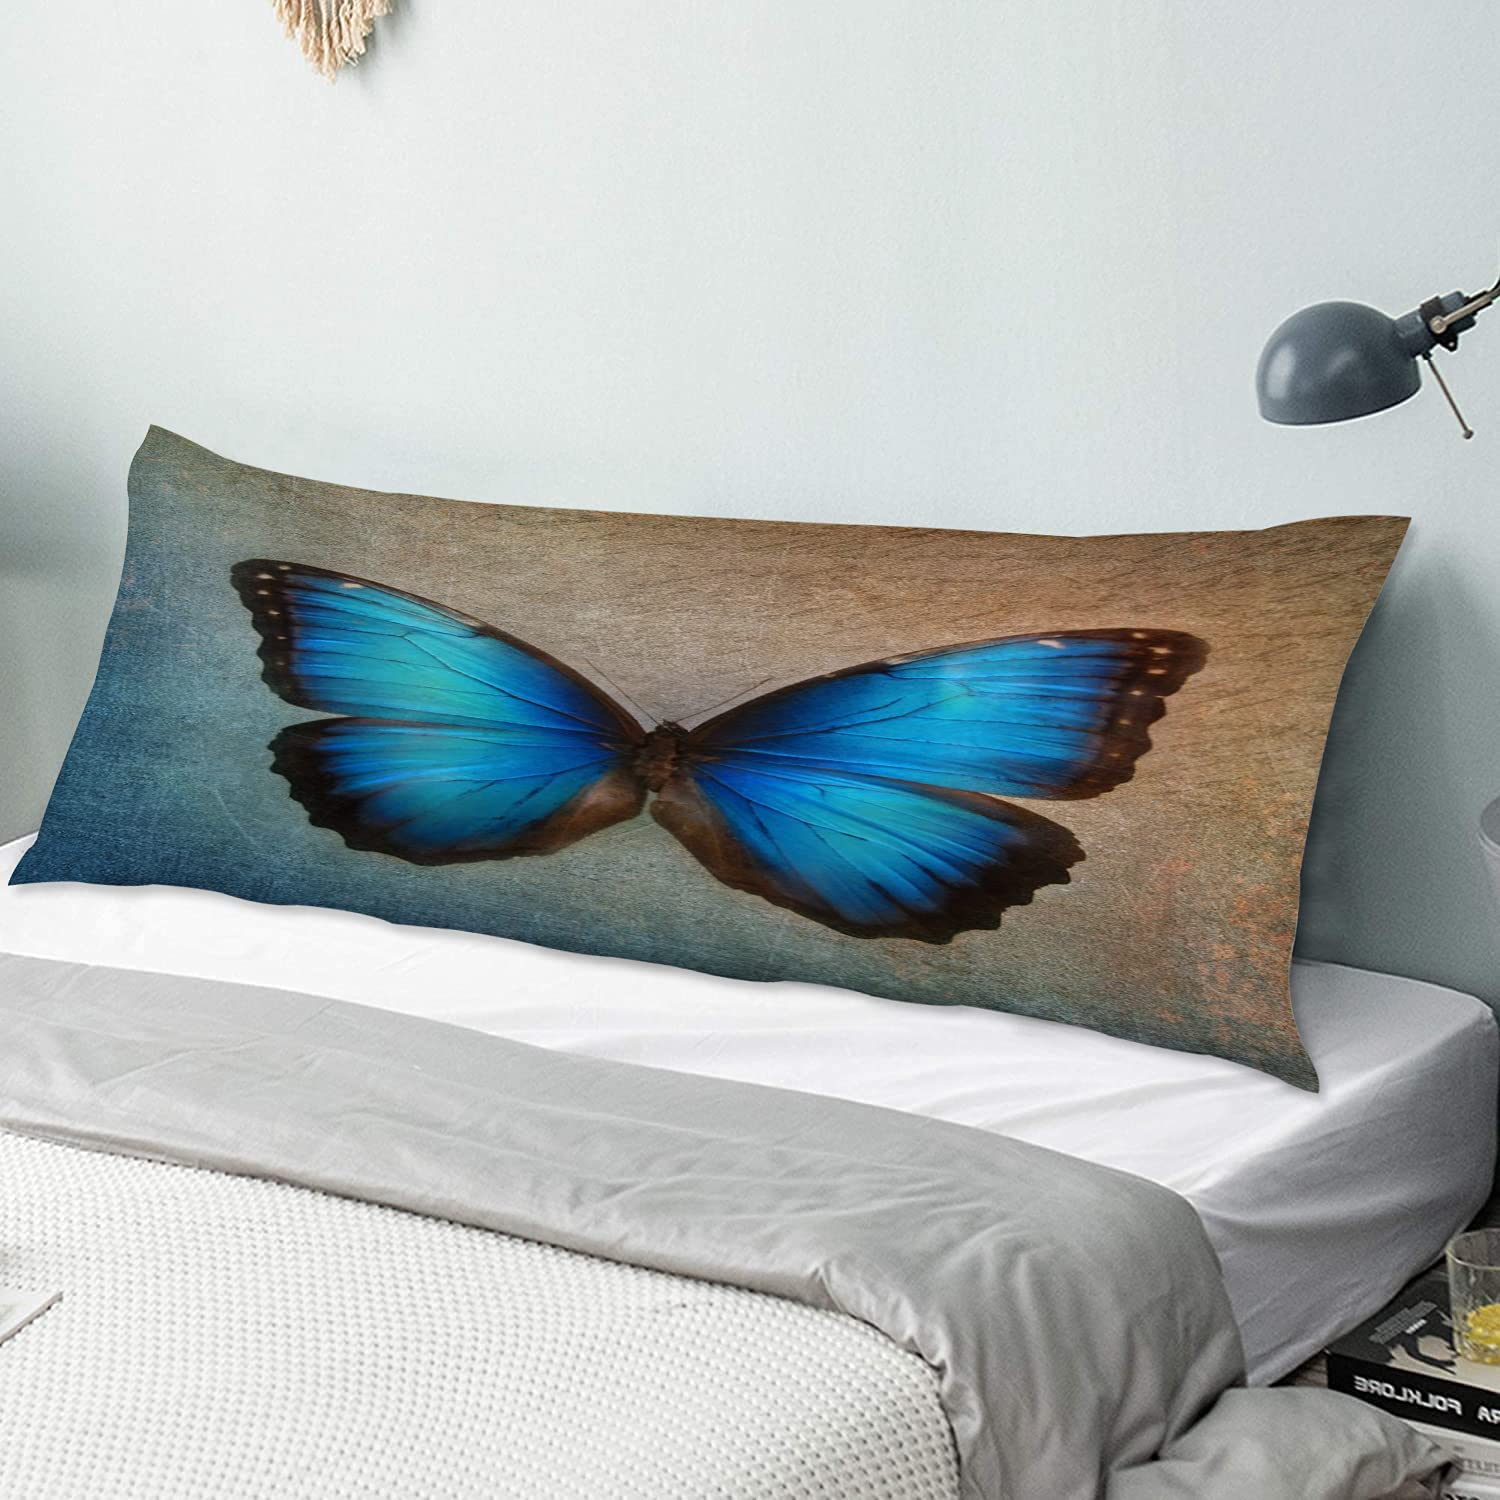 KENADVI Body Pillow Cover Pillowcase It excellence is very popular Blu Background Vintage with